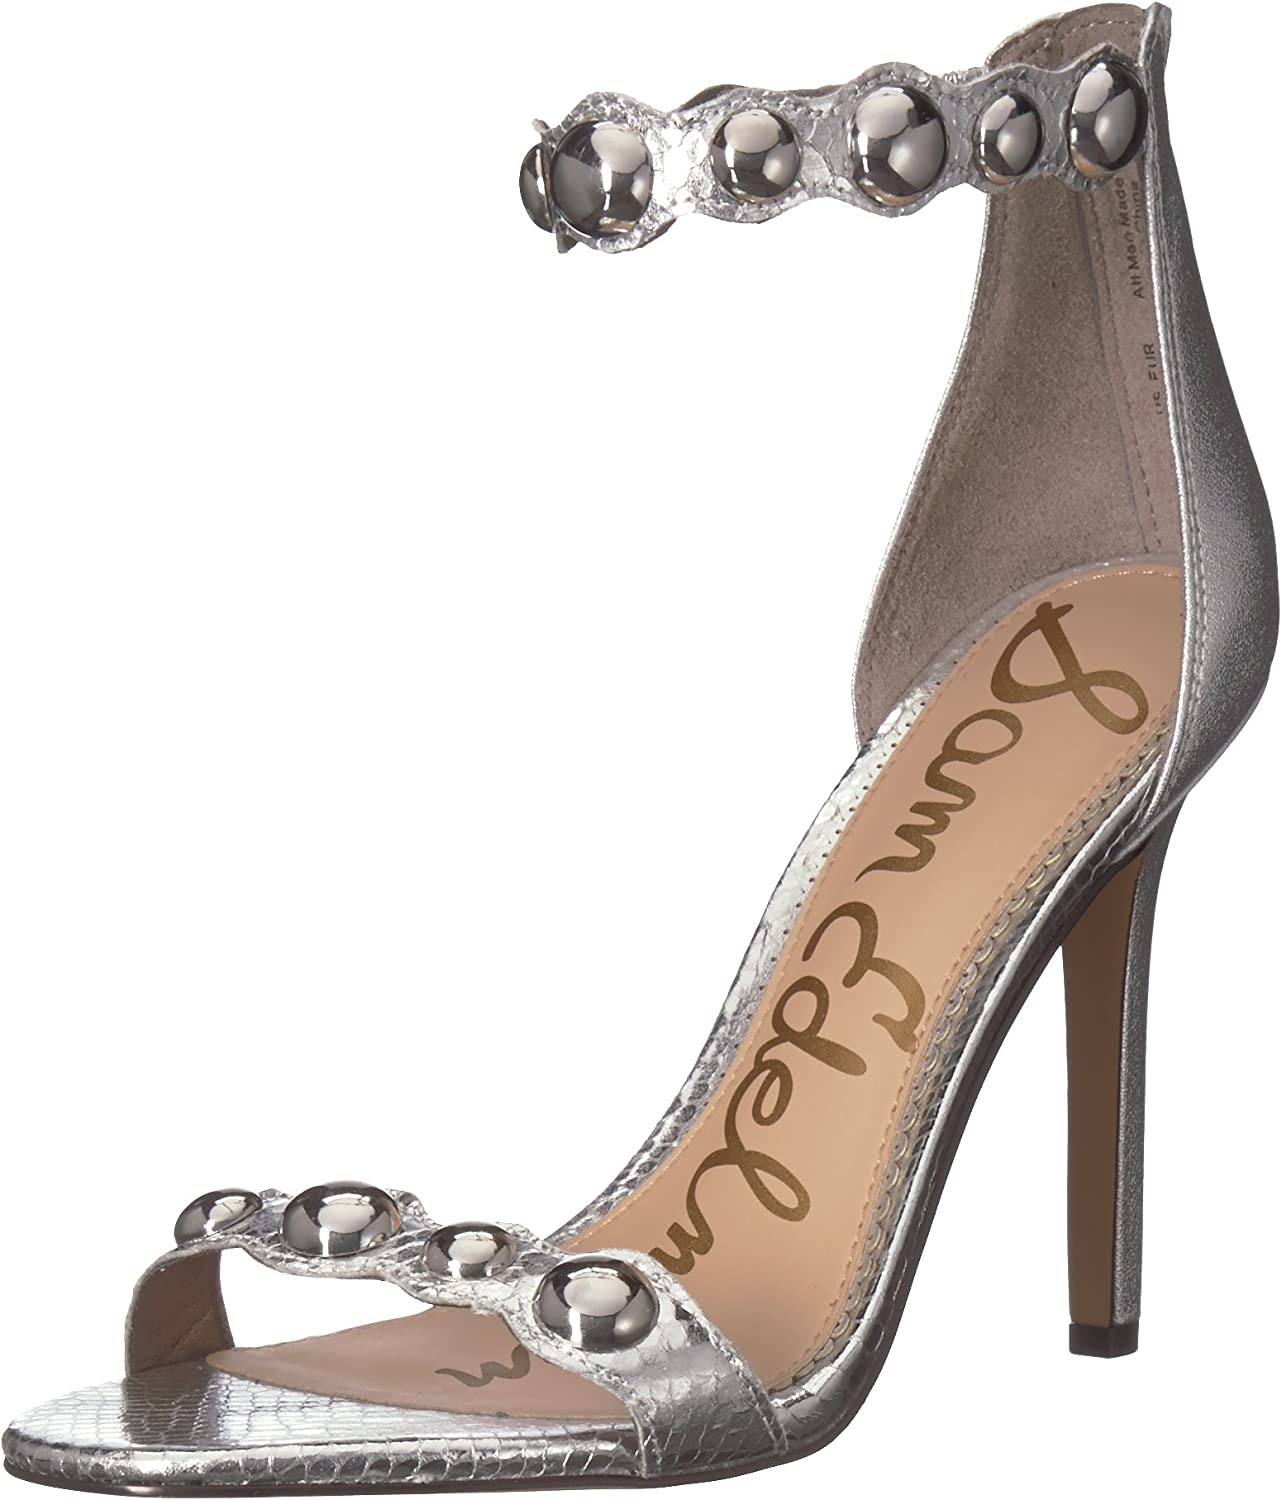 Sam Edelman Women's Addison Fashion Sandals